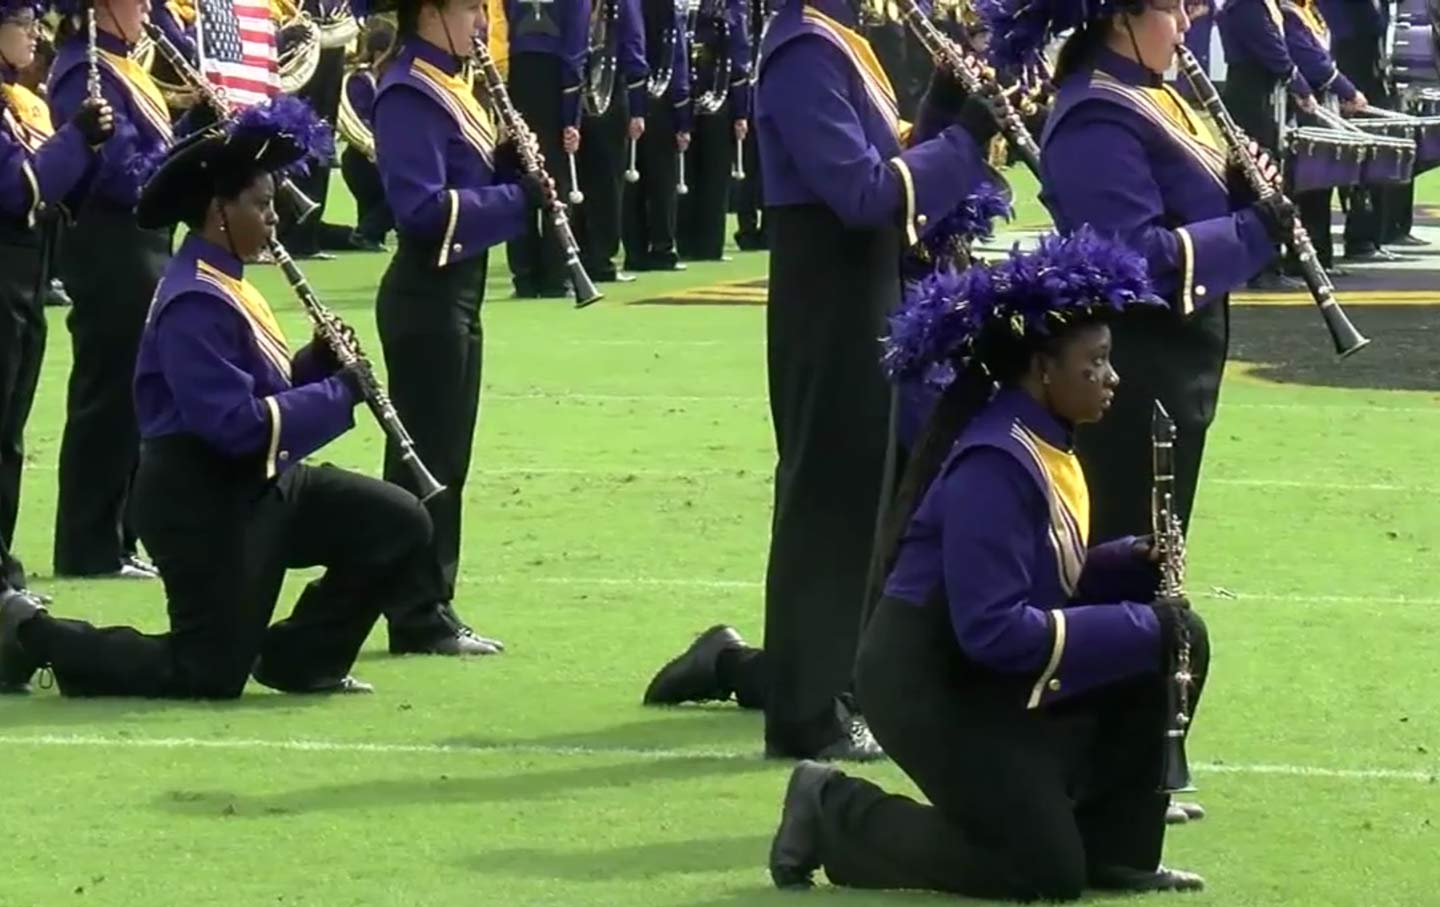 East Carolina University Band Kneeling